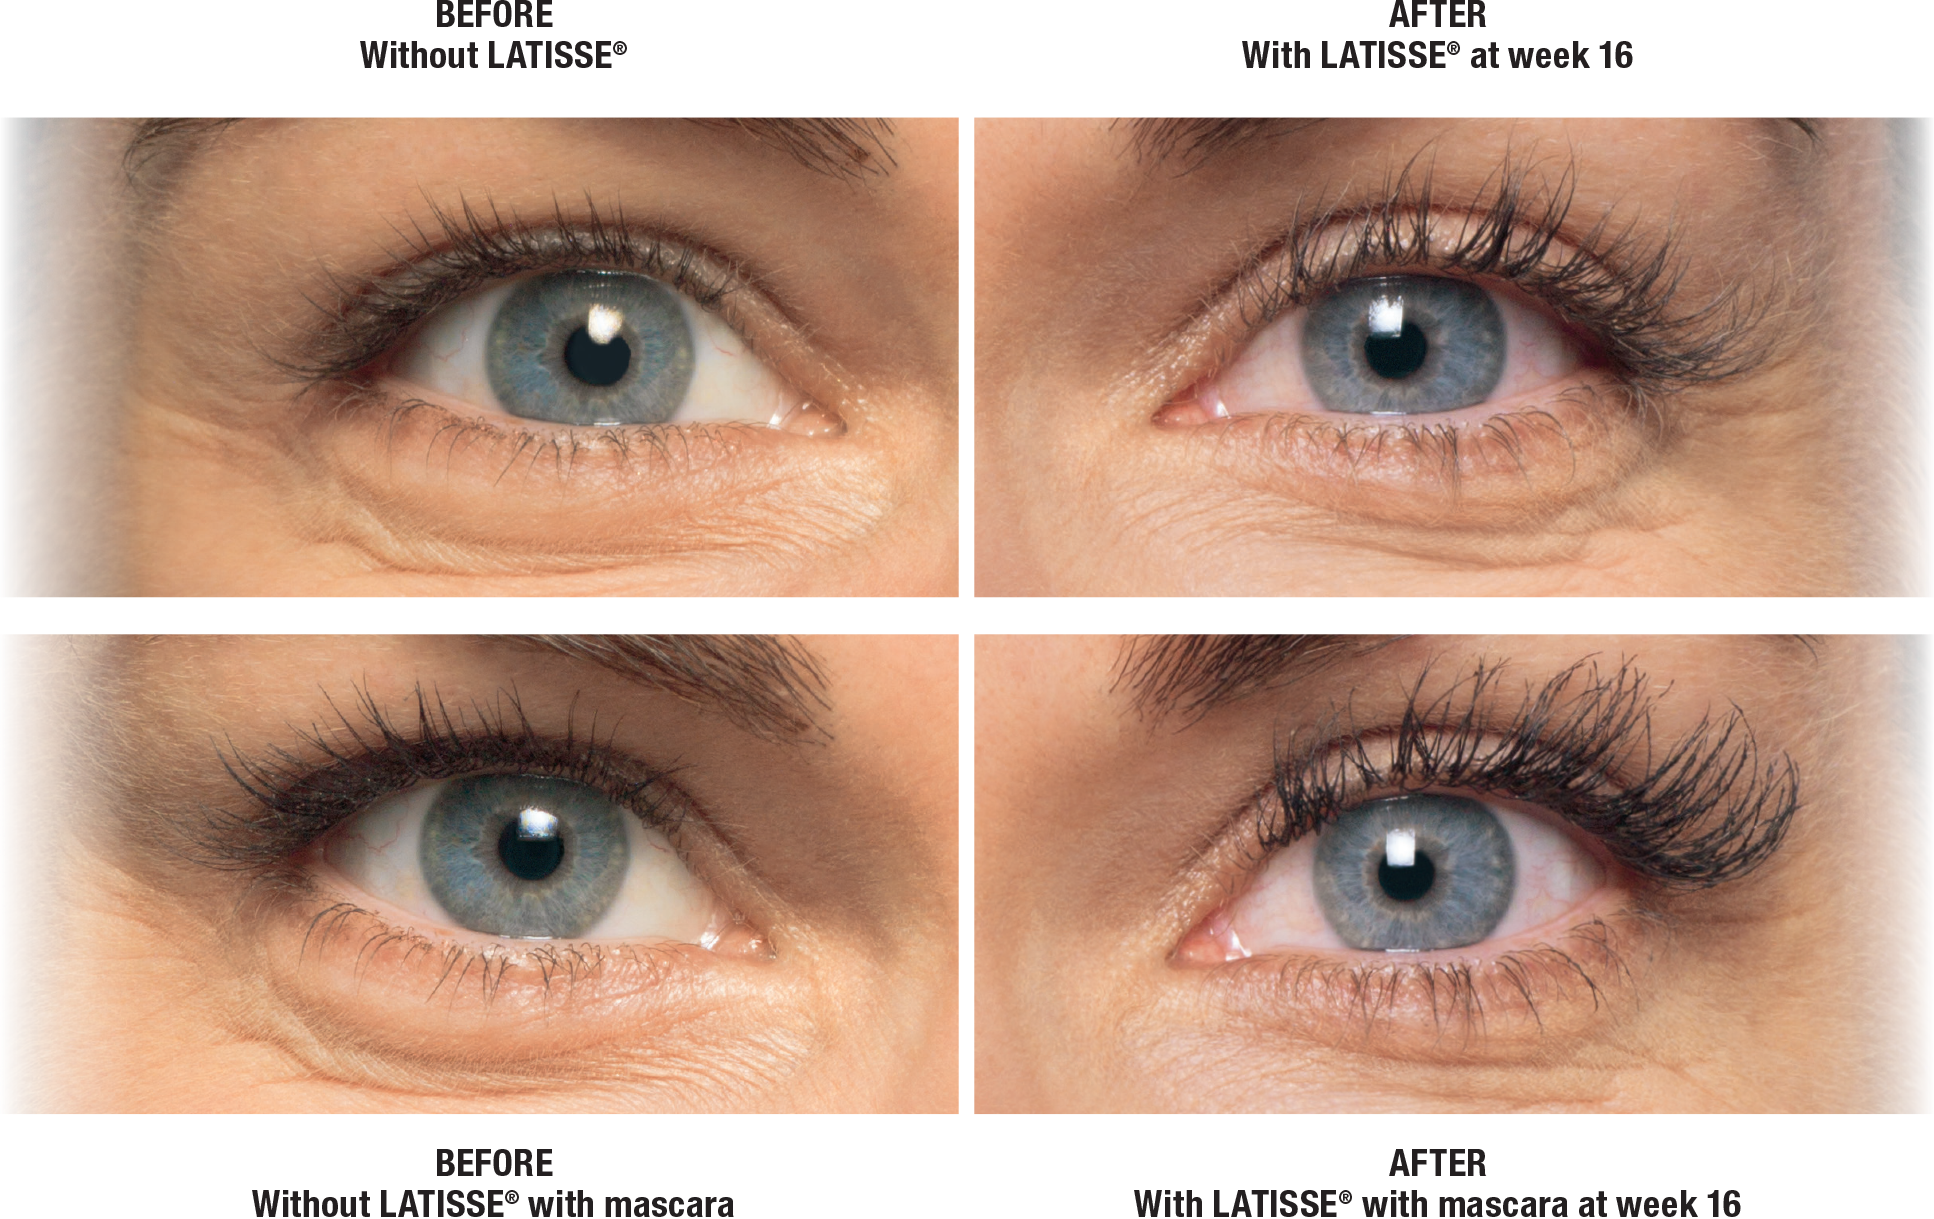 f90b1e63183 Let Belleza Med Spa double your lash fullness in just 16 weeks! Latisse  solution is a prescription medication approved by the FDA for the treatment  ...